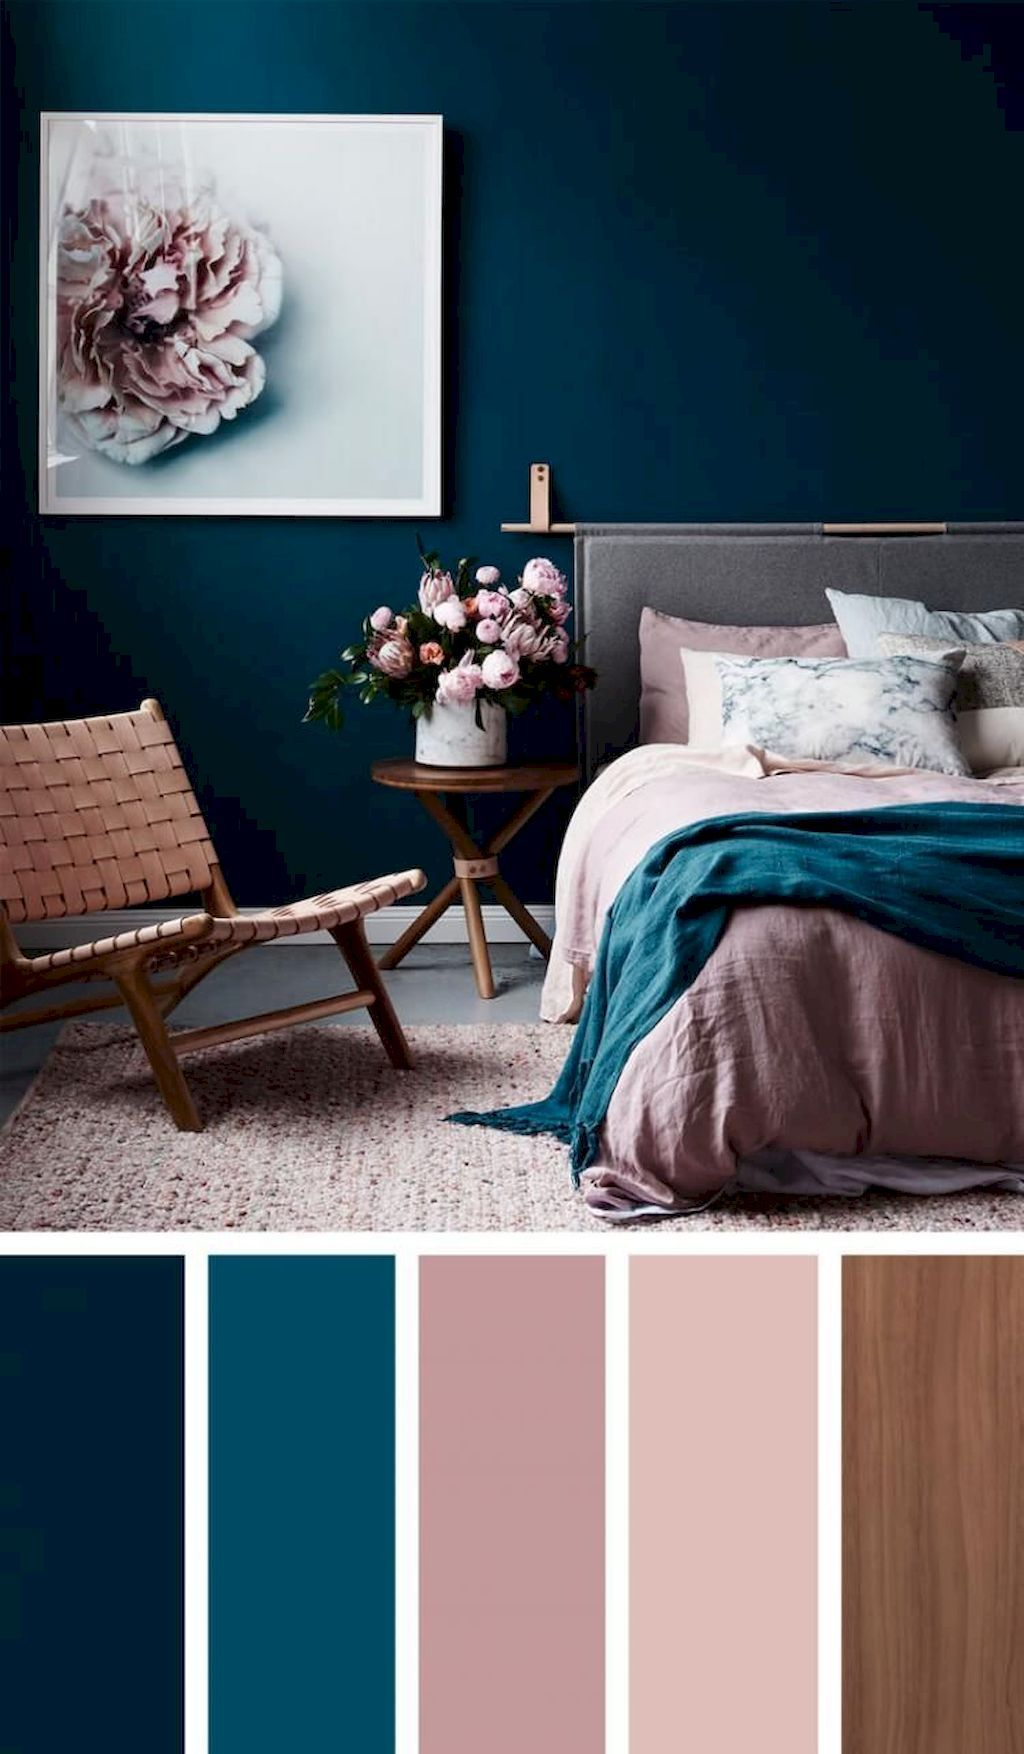 72 Simple Bedroom Decorating Ideas with Beautiful Color images